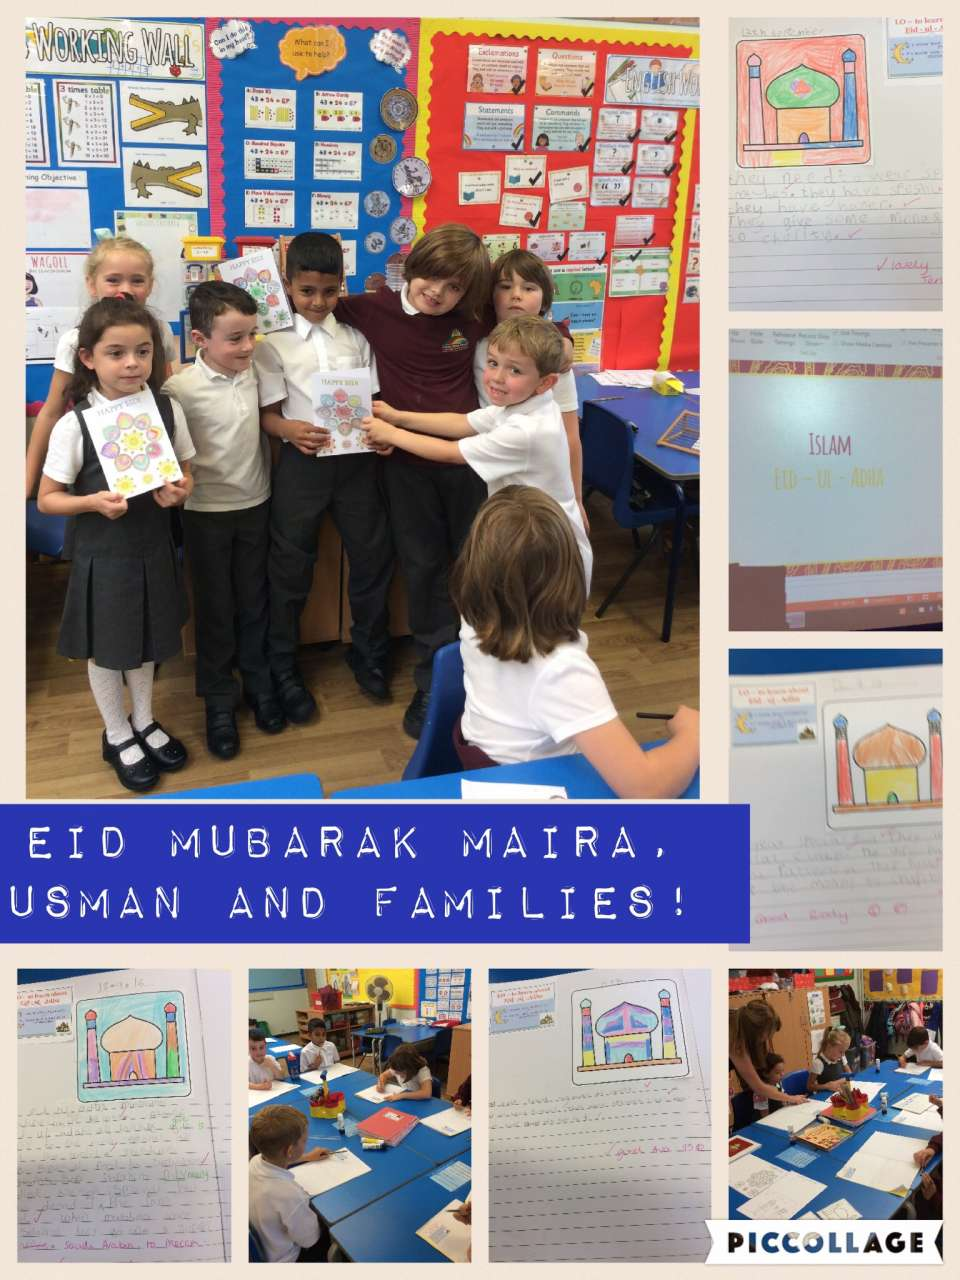 We all enjoyed finding out about Eid today